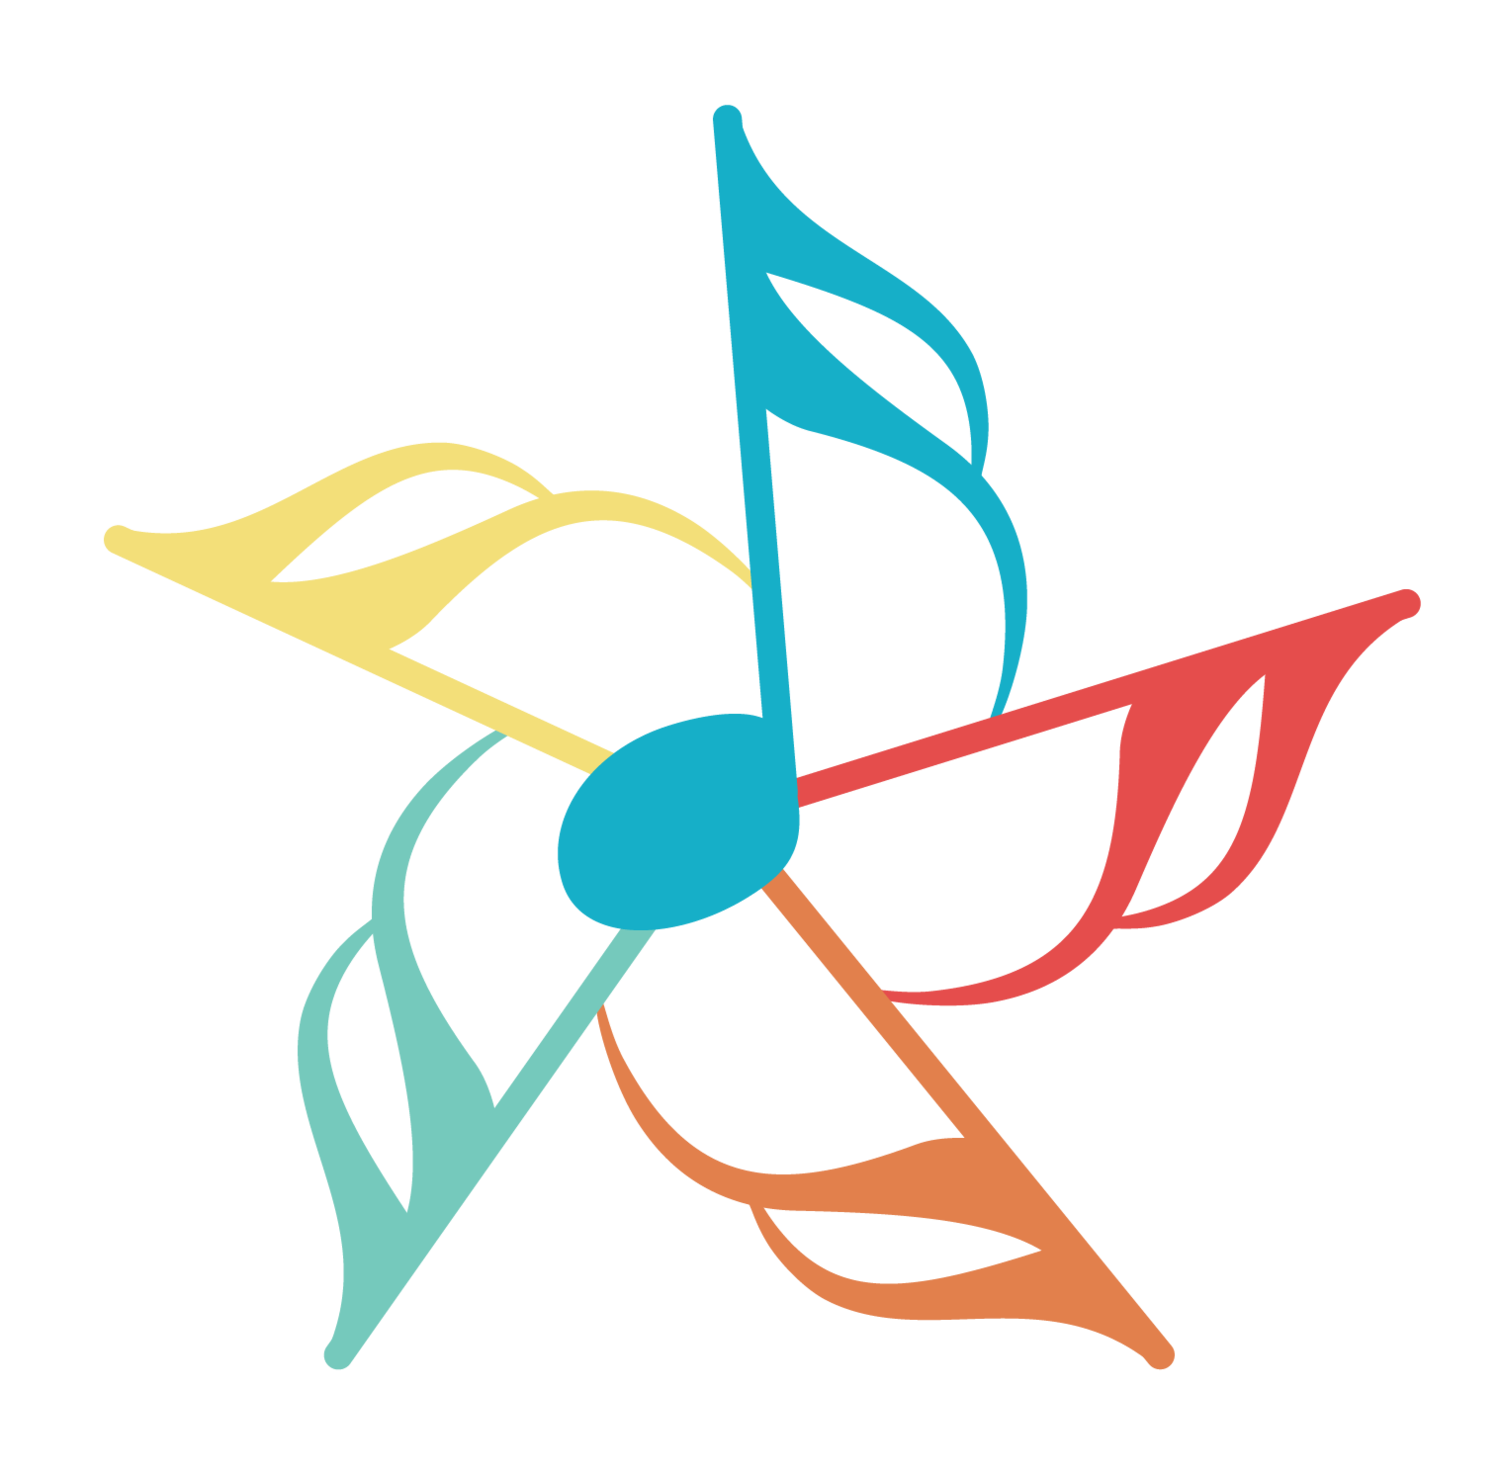 St. Maries Choral Arts - They have a calling to serve and enhance the artistic needs of the citizens of Southern Maryland through the singing and performing of choral music.